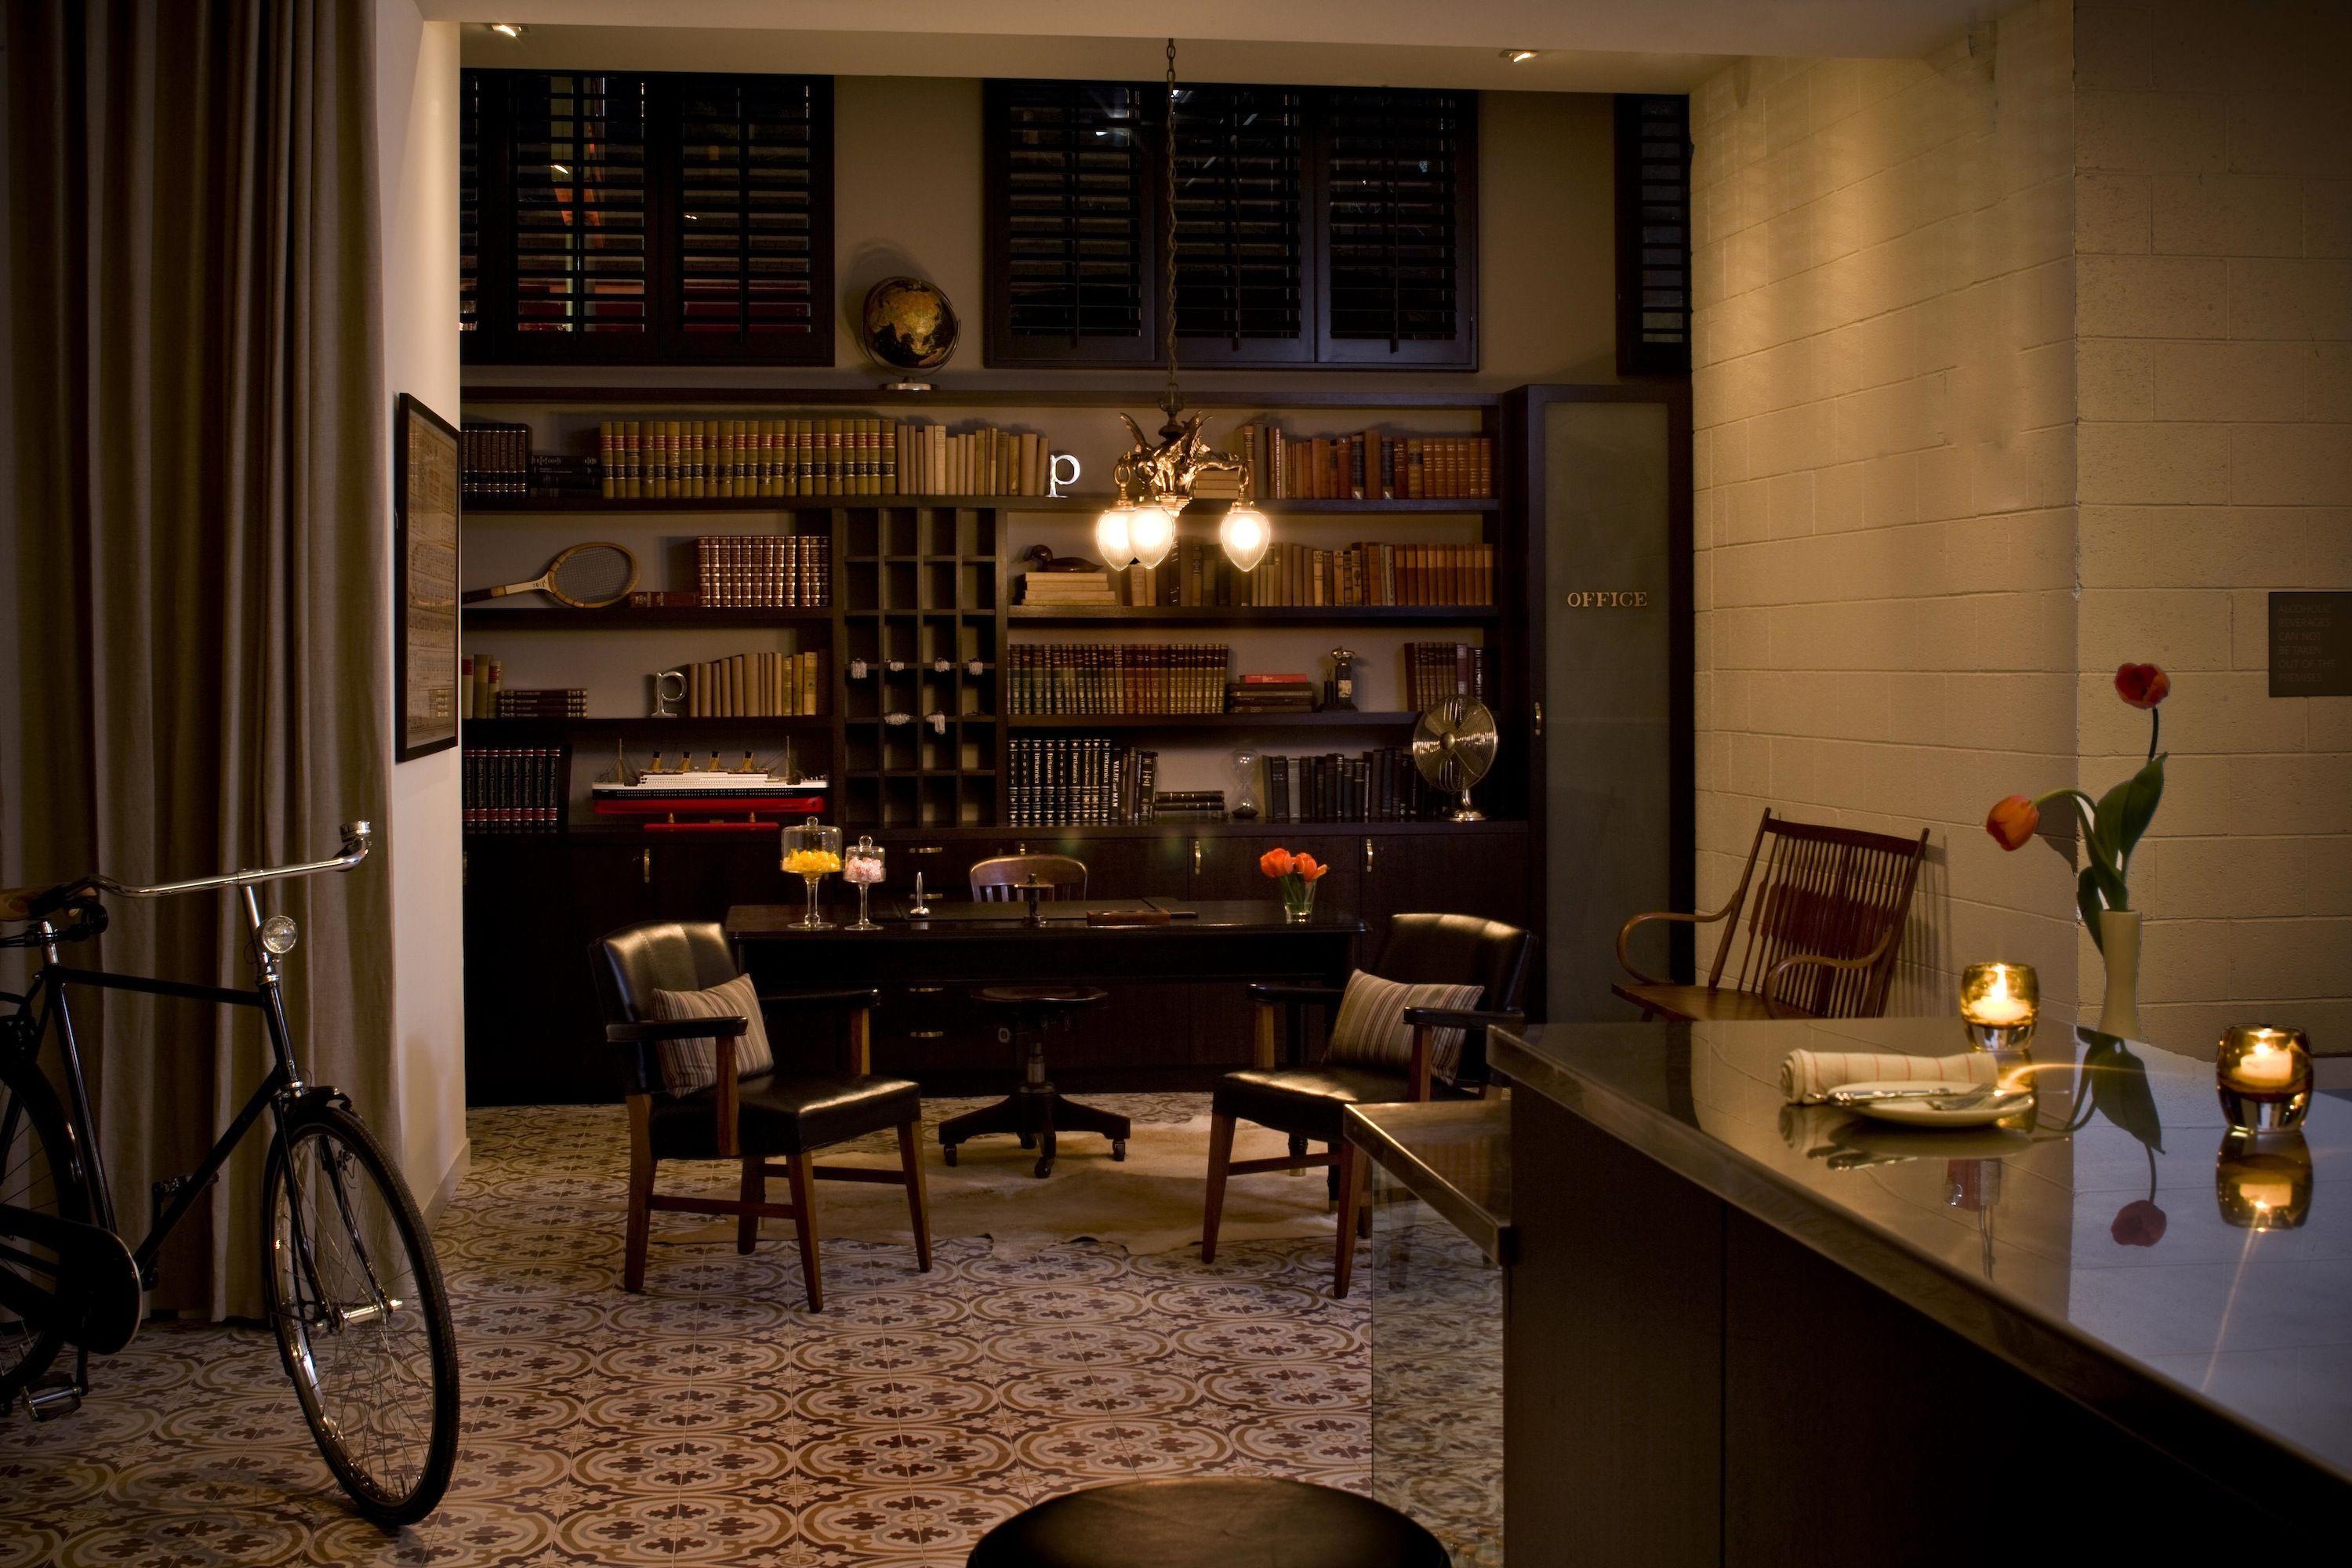 industrial bohemian apartment - google search | city digs